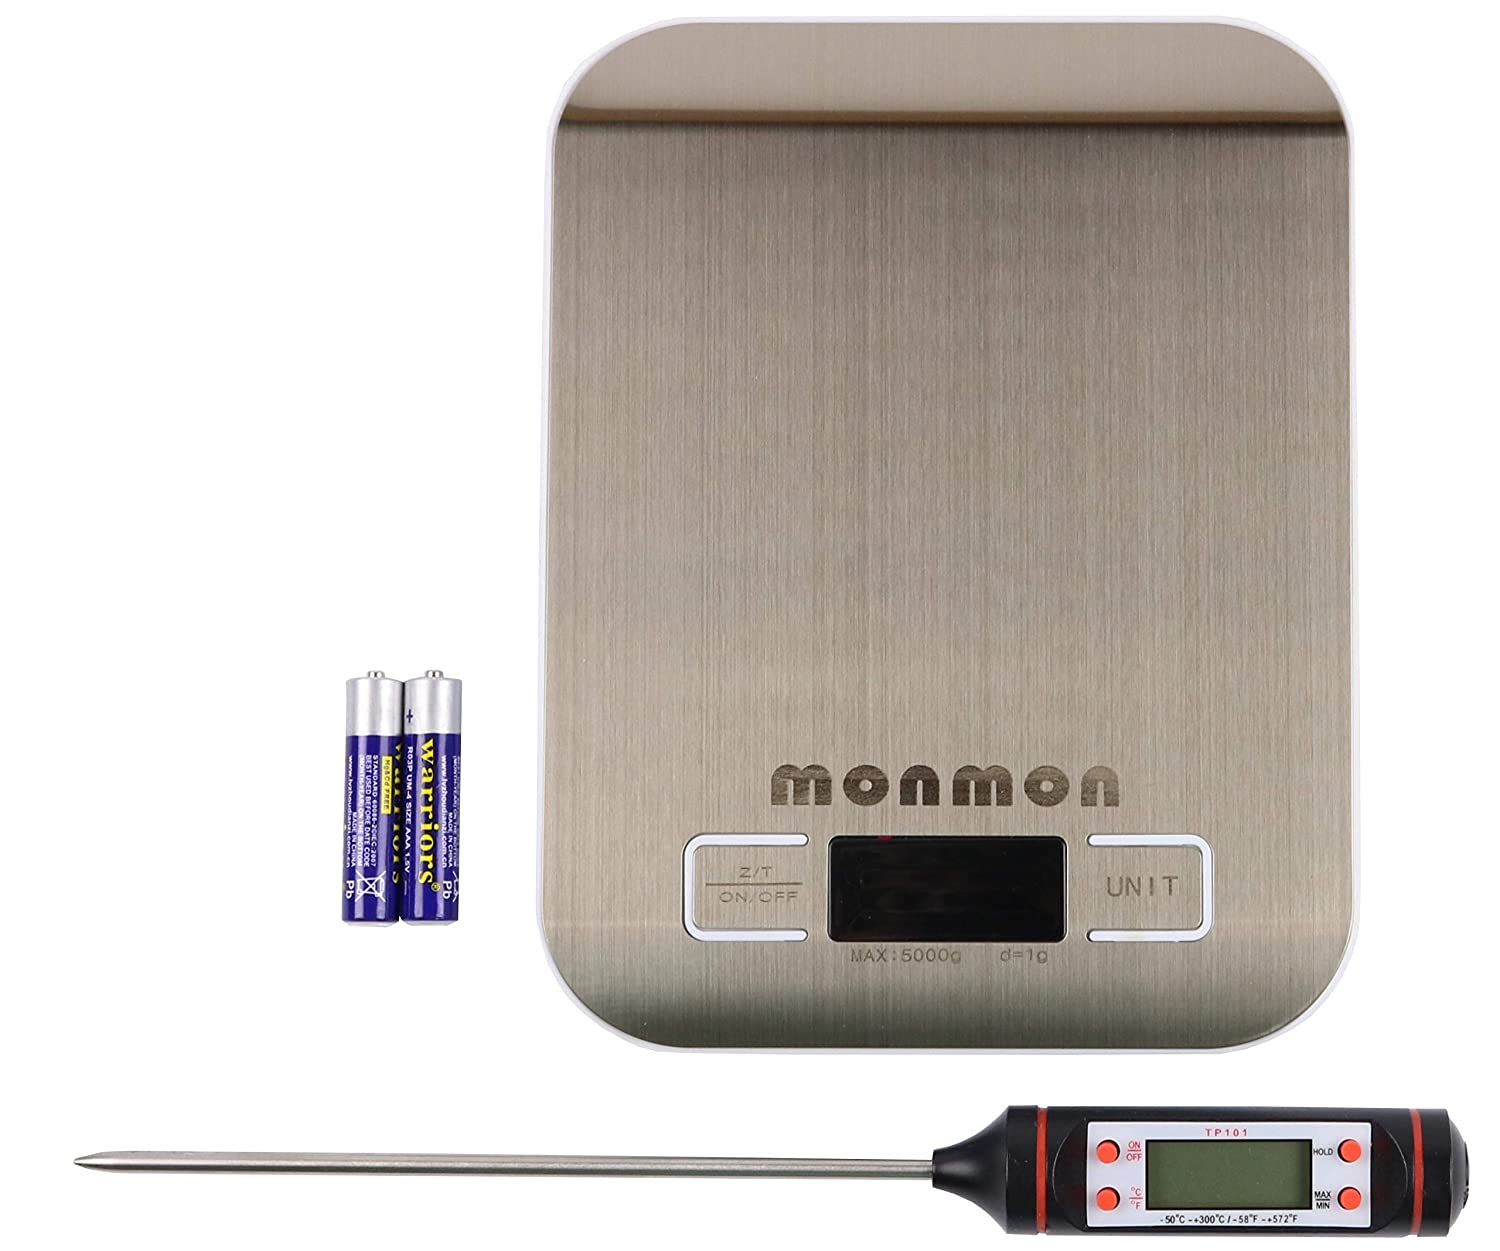 MonMon Digital Kitchen Scale with LCD Display,Stainless Steel Platform (5kg/11lb), with Bonus Digital Food Cooking Thermometer (Batteries Included). Designed for Cooking, Baking, Meal prep